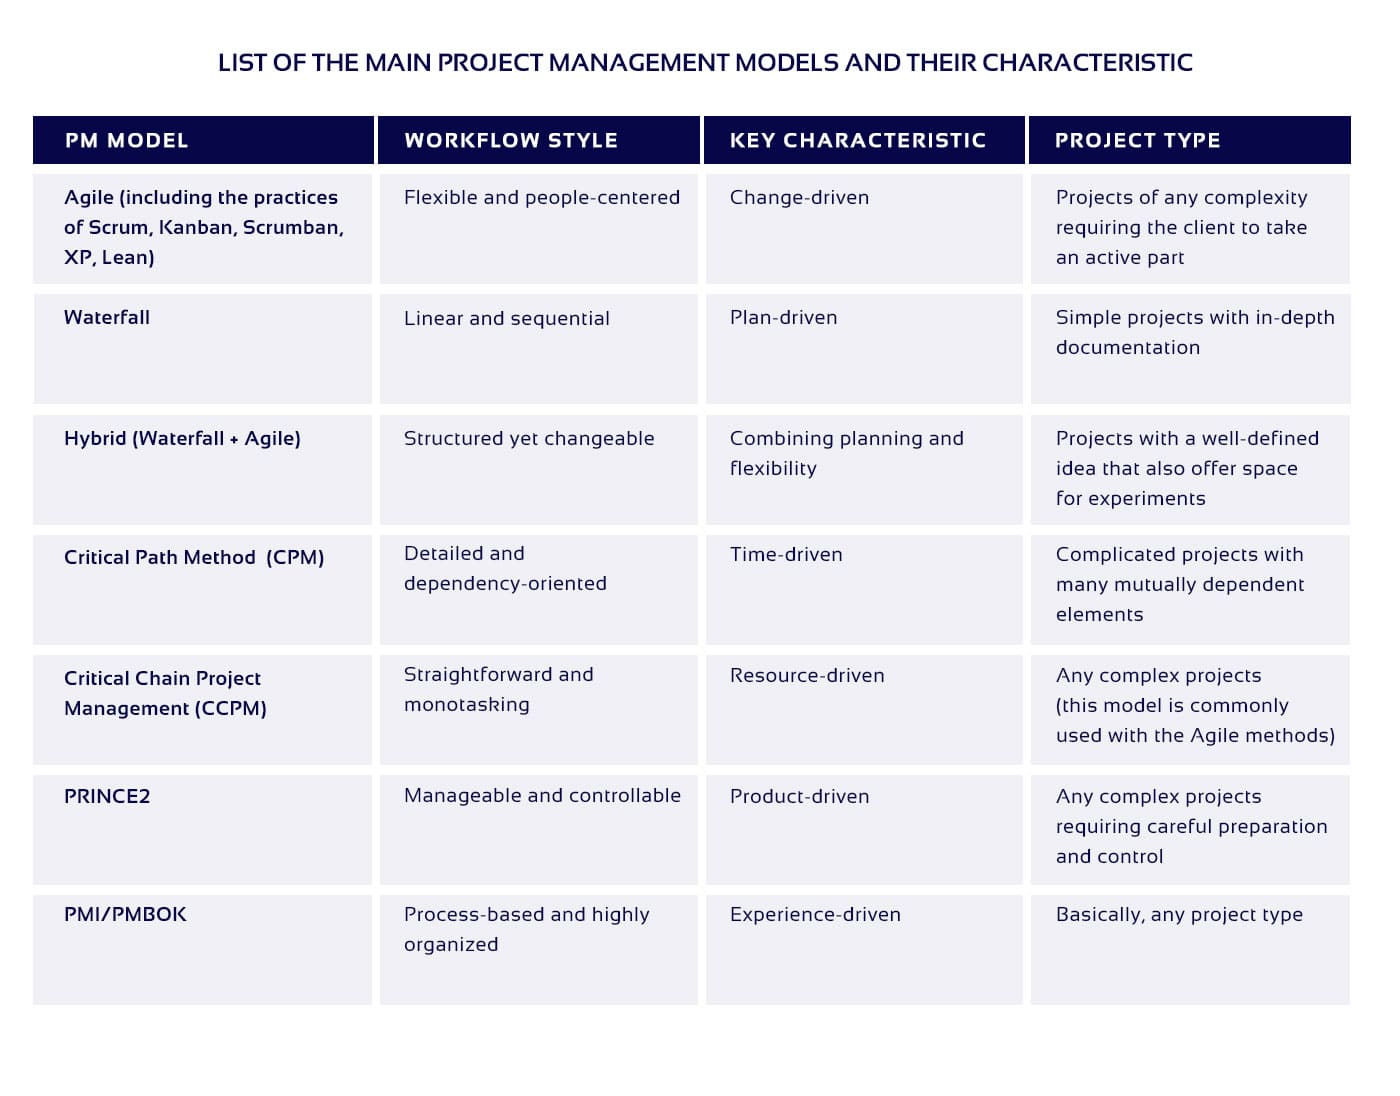 The table of main PM models characteristics